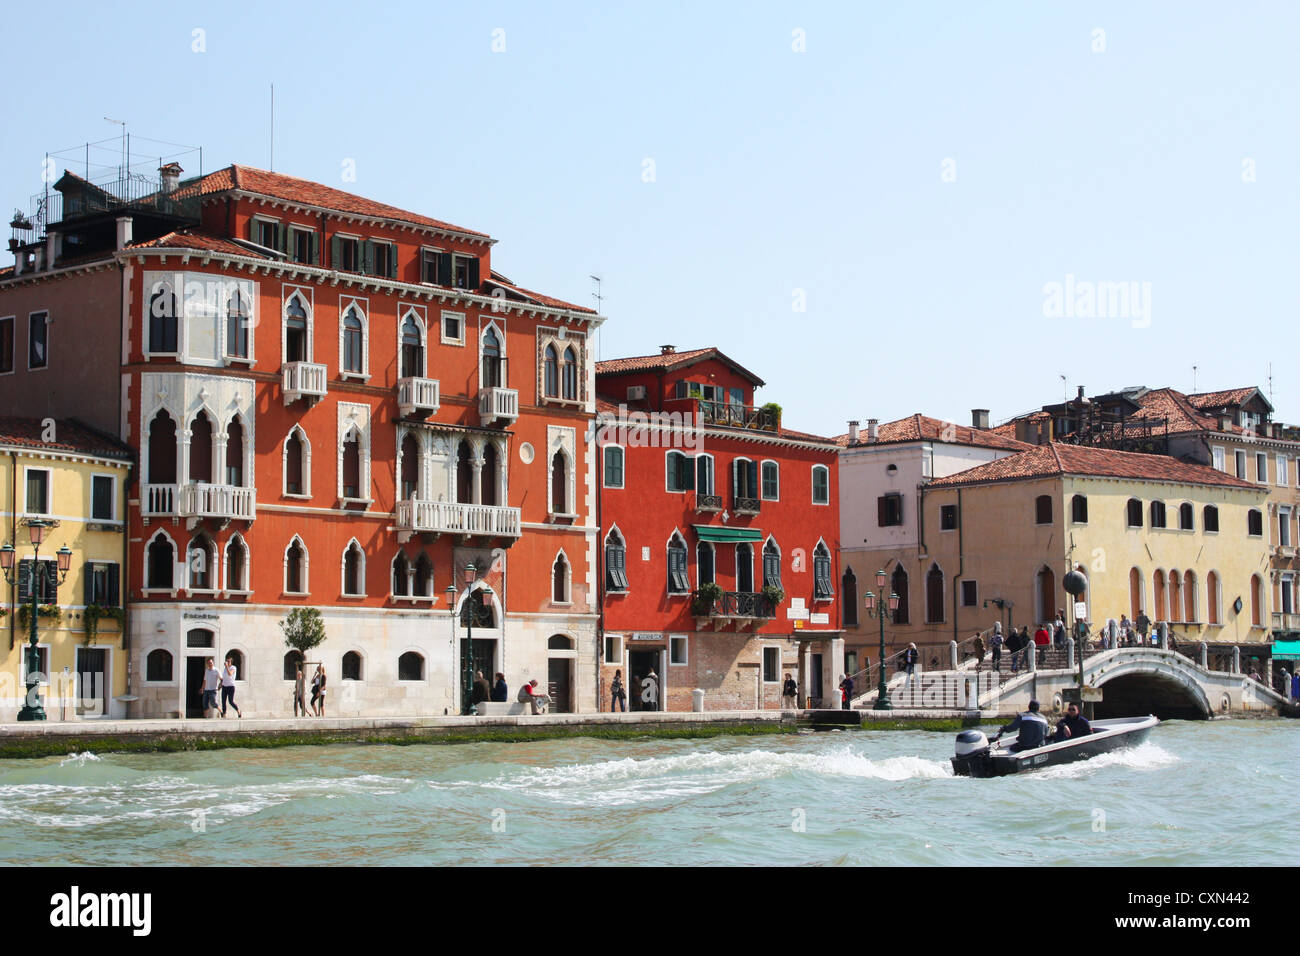 Buildings , bridge and a boat in Grand canal in Venice, Italy Stock Photo